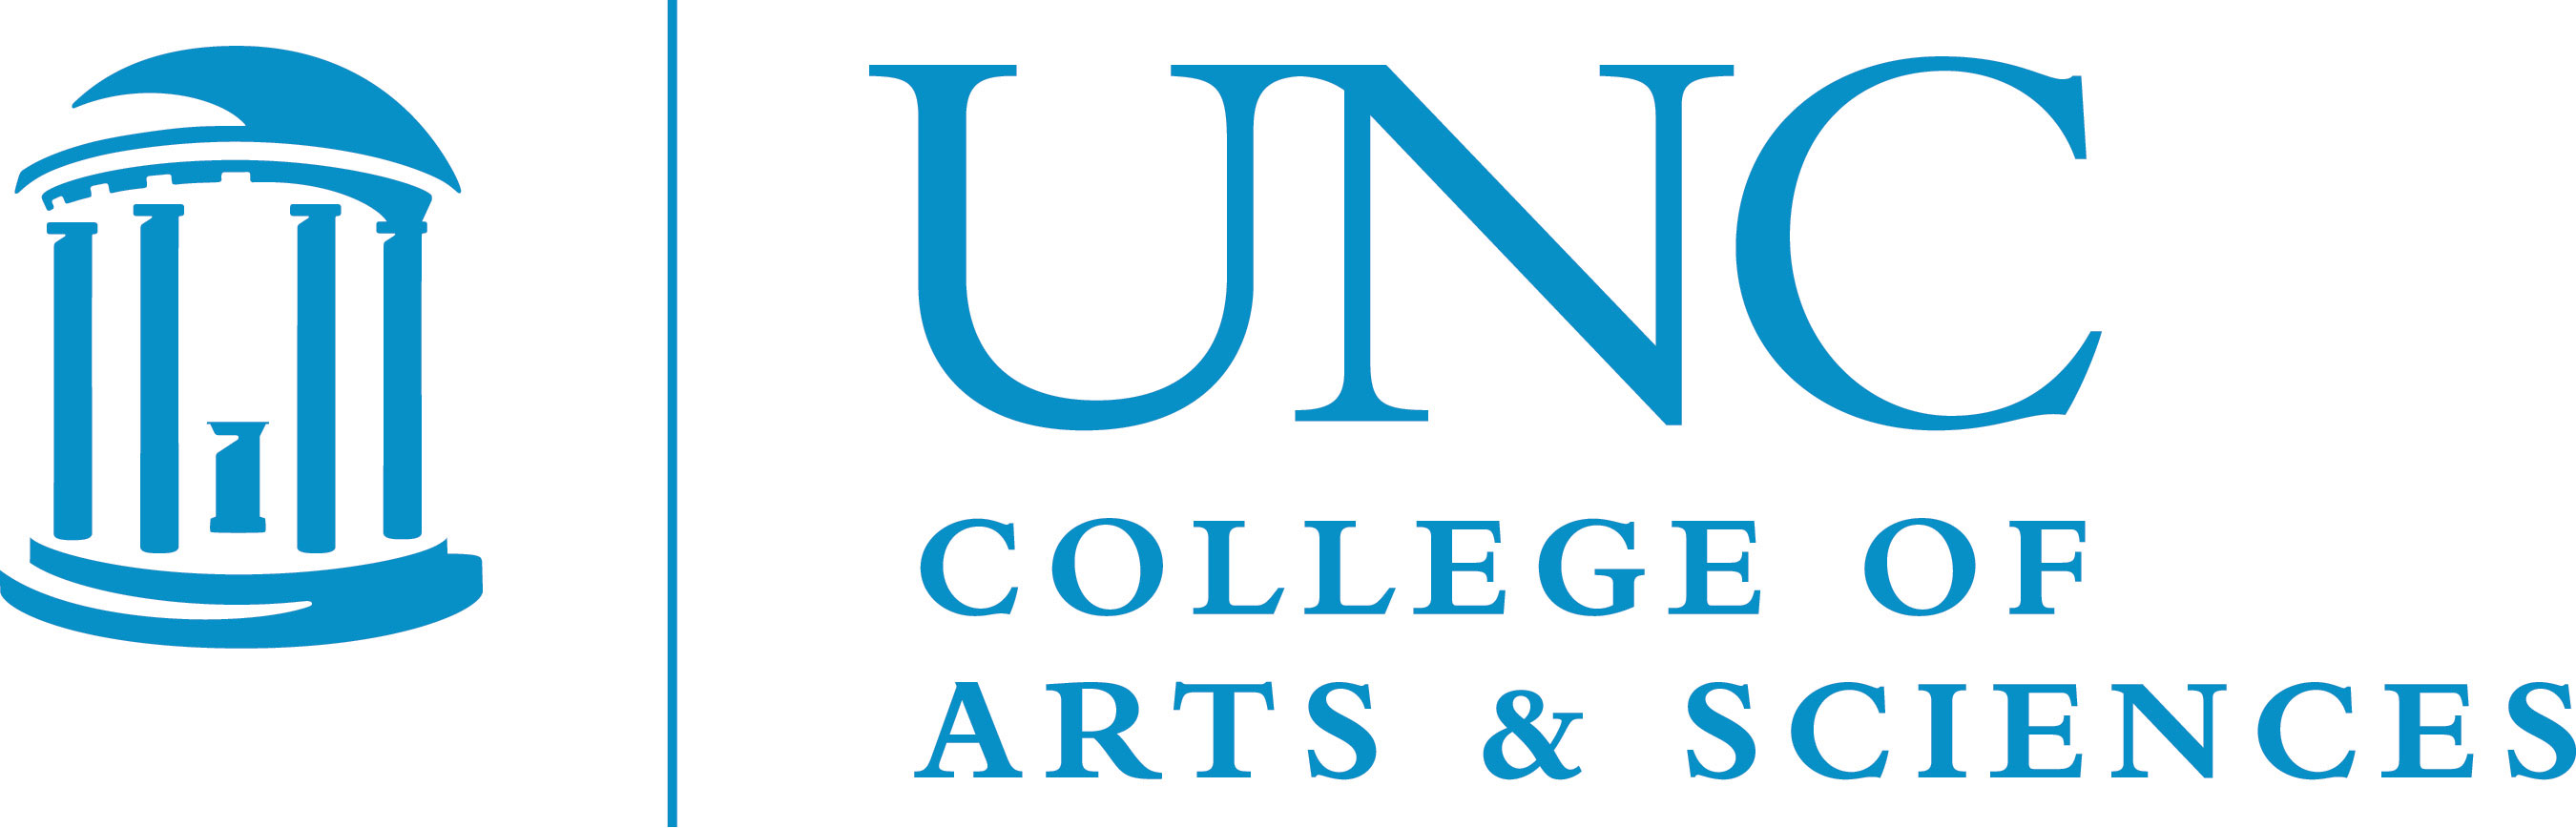 official college of arts science logo computer science jpg